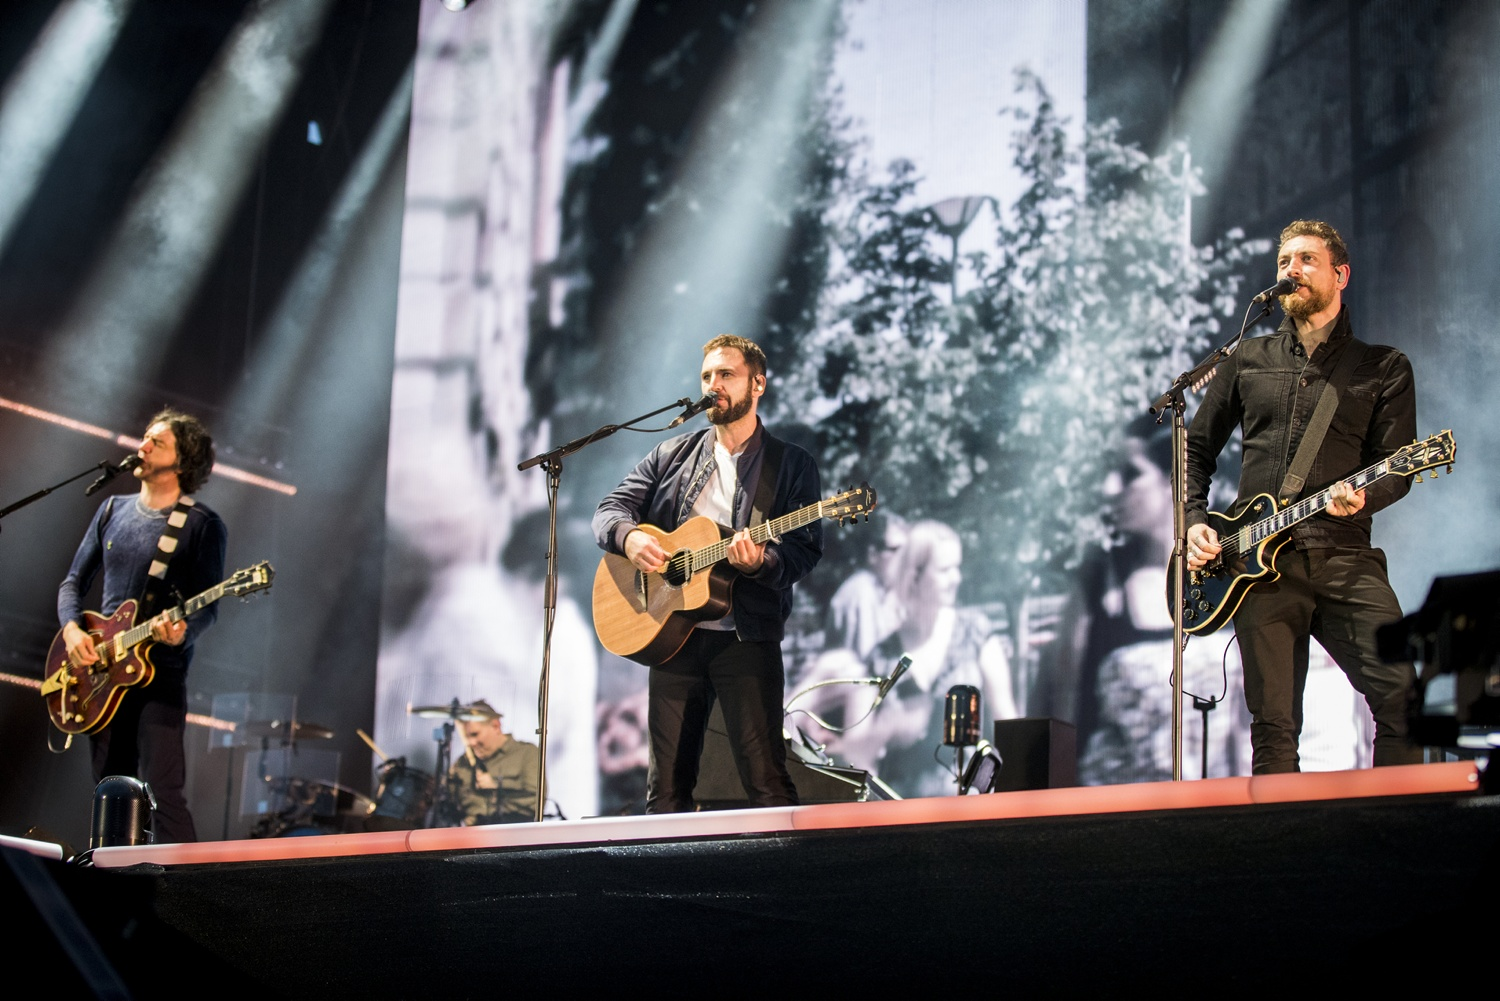 <div>Snow Patrol cancel gigs as guitarist 'loses power of hand'</div>